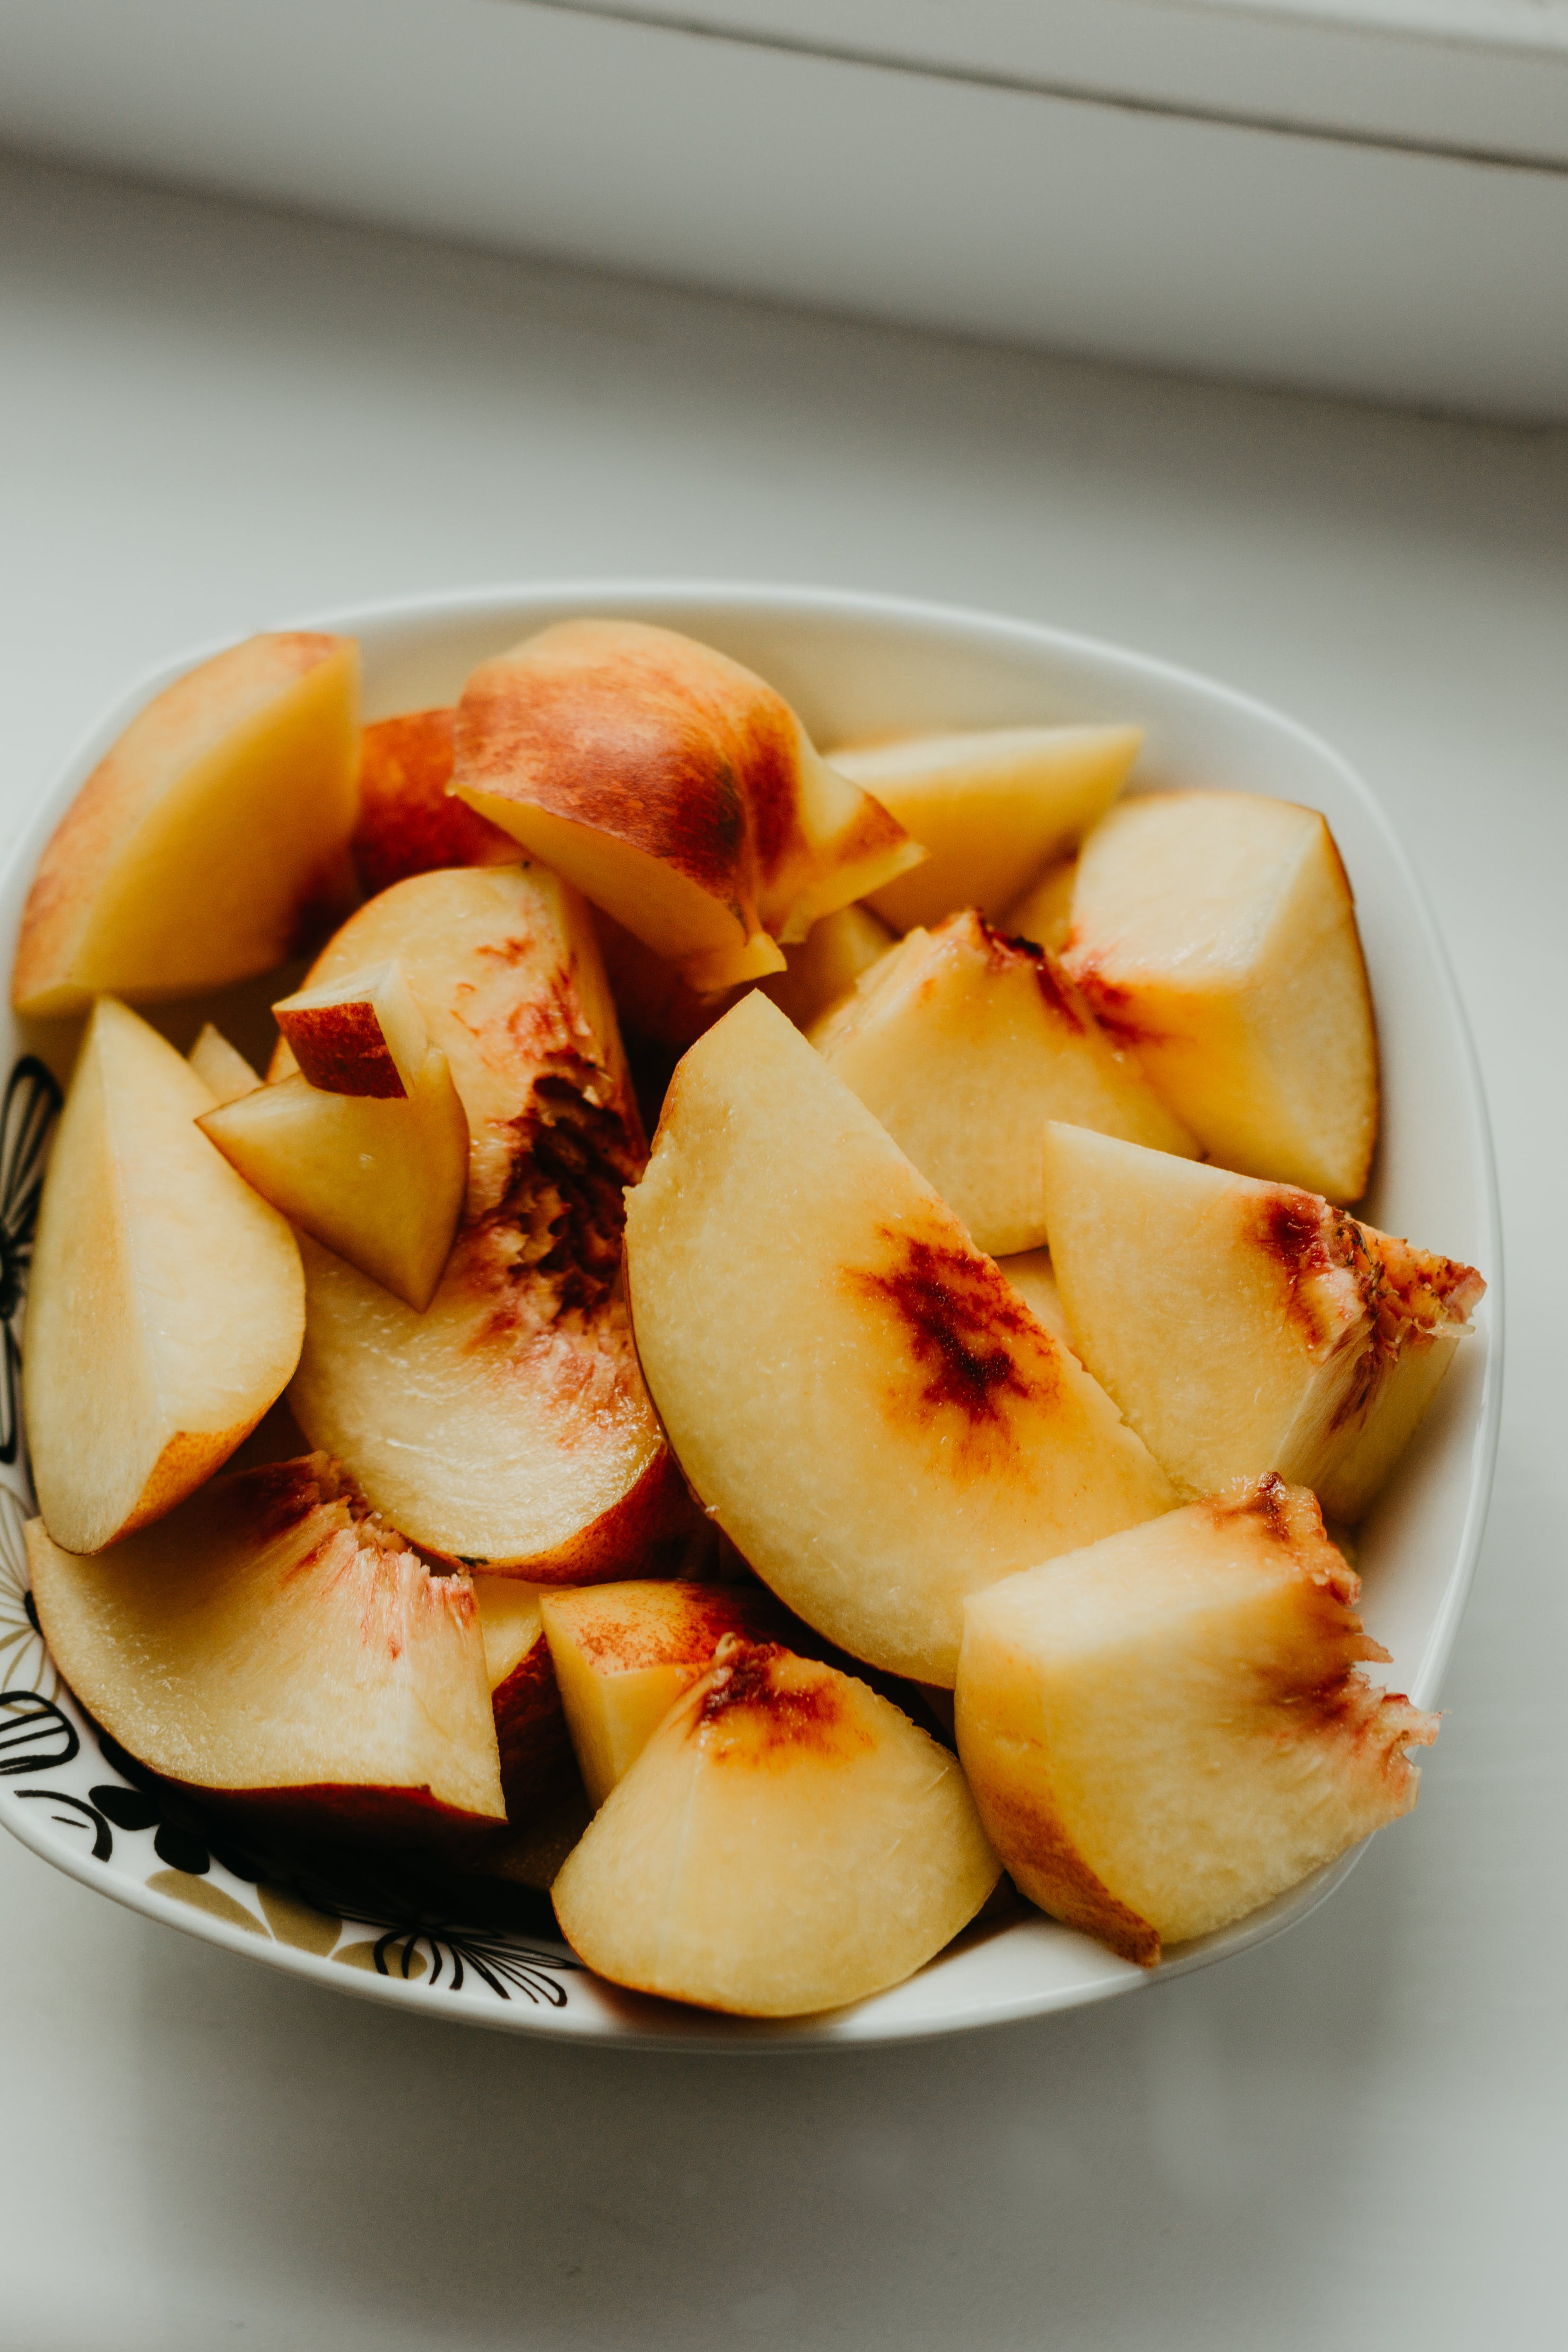 Sliced Apple Fruit on White Plate